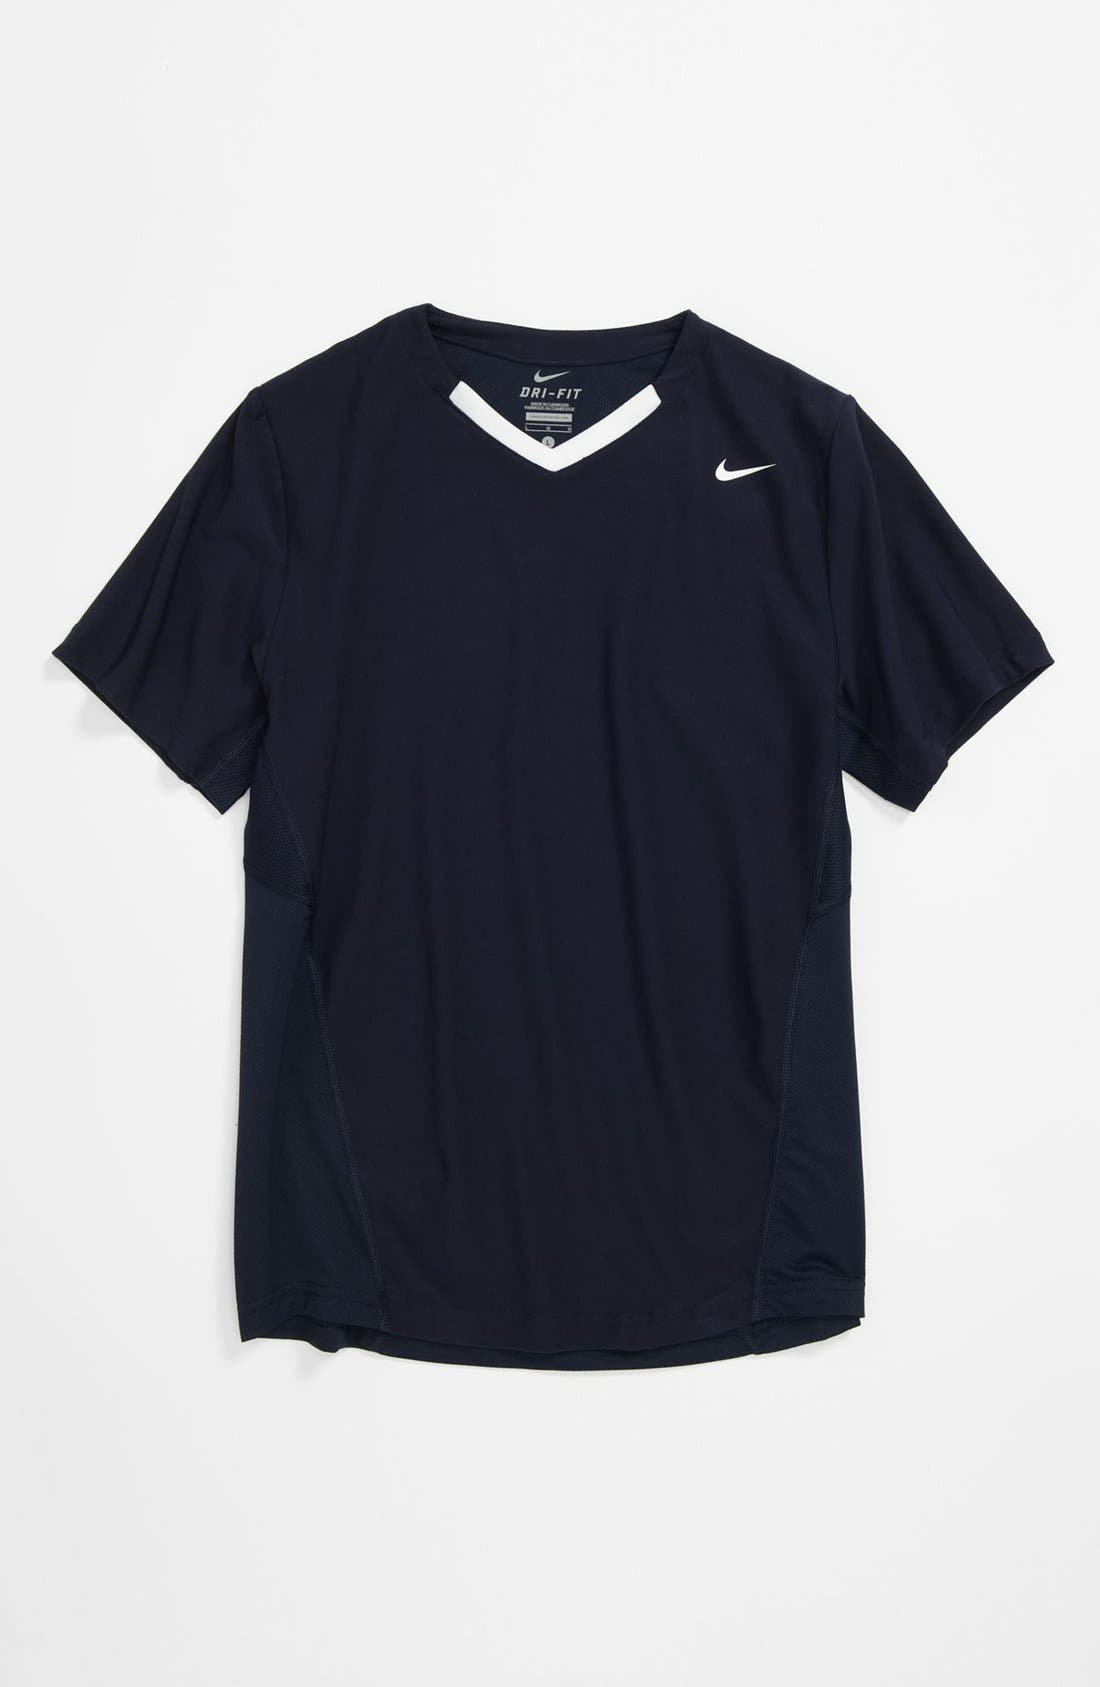 Alternate Image 1 Selected - Nike 'Premier - Rafa Nadal' Dri-FIT T-Shirt (Big Boys)